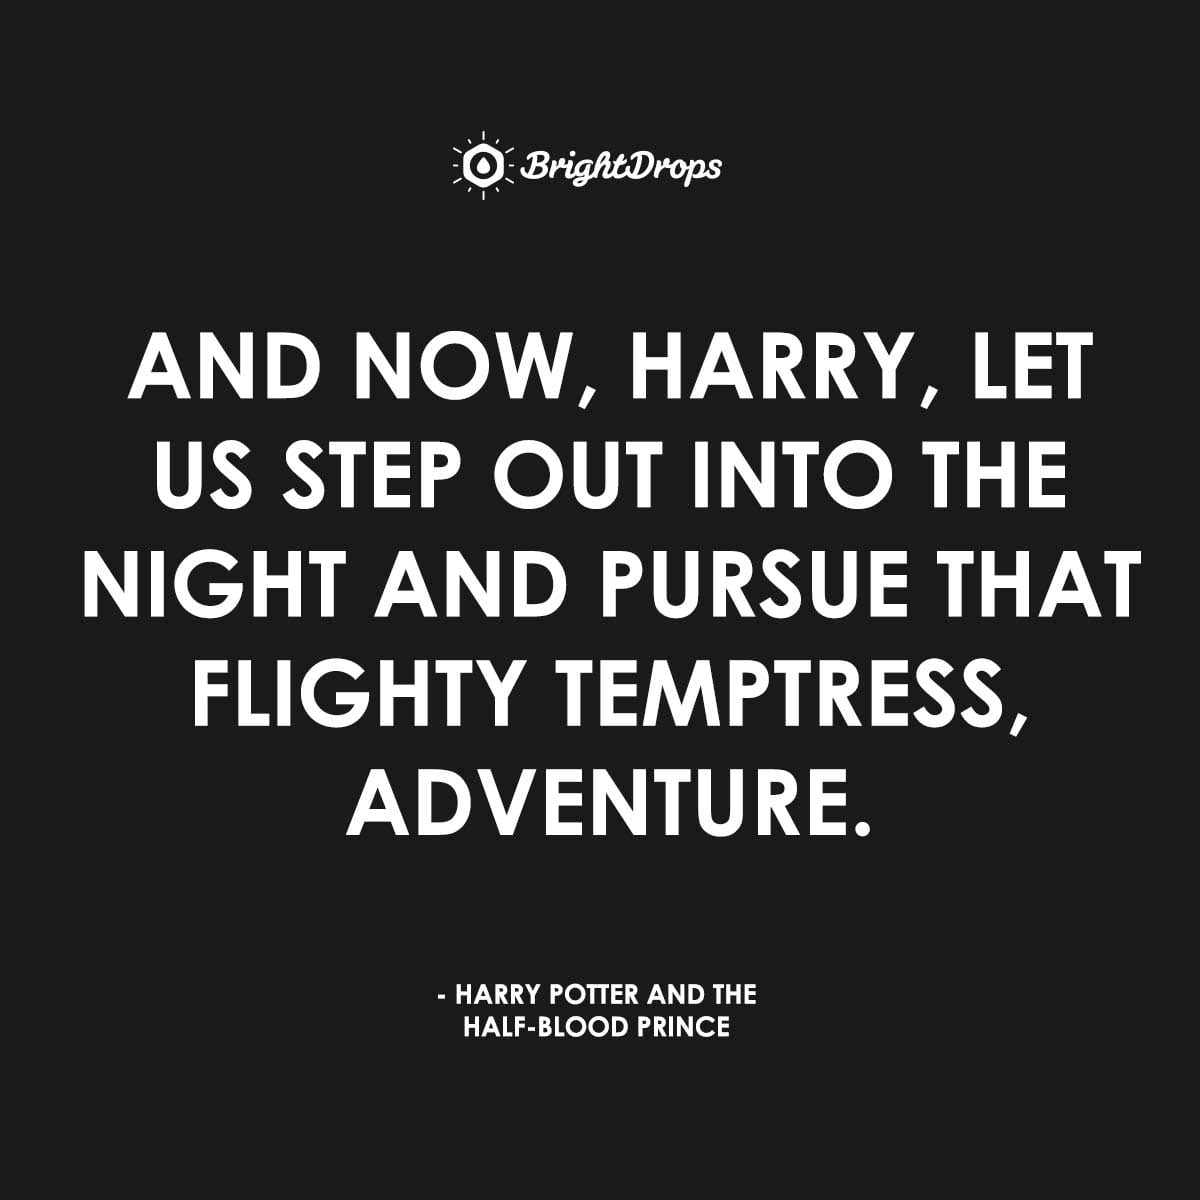 And now, Harry, let us step out into the night and pursue that flighty temptress, adventure. - Harry Potter and the Half-Blood Prince